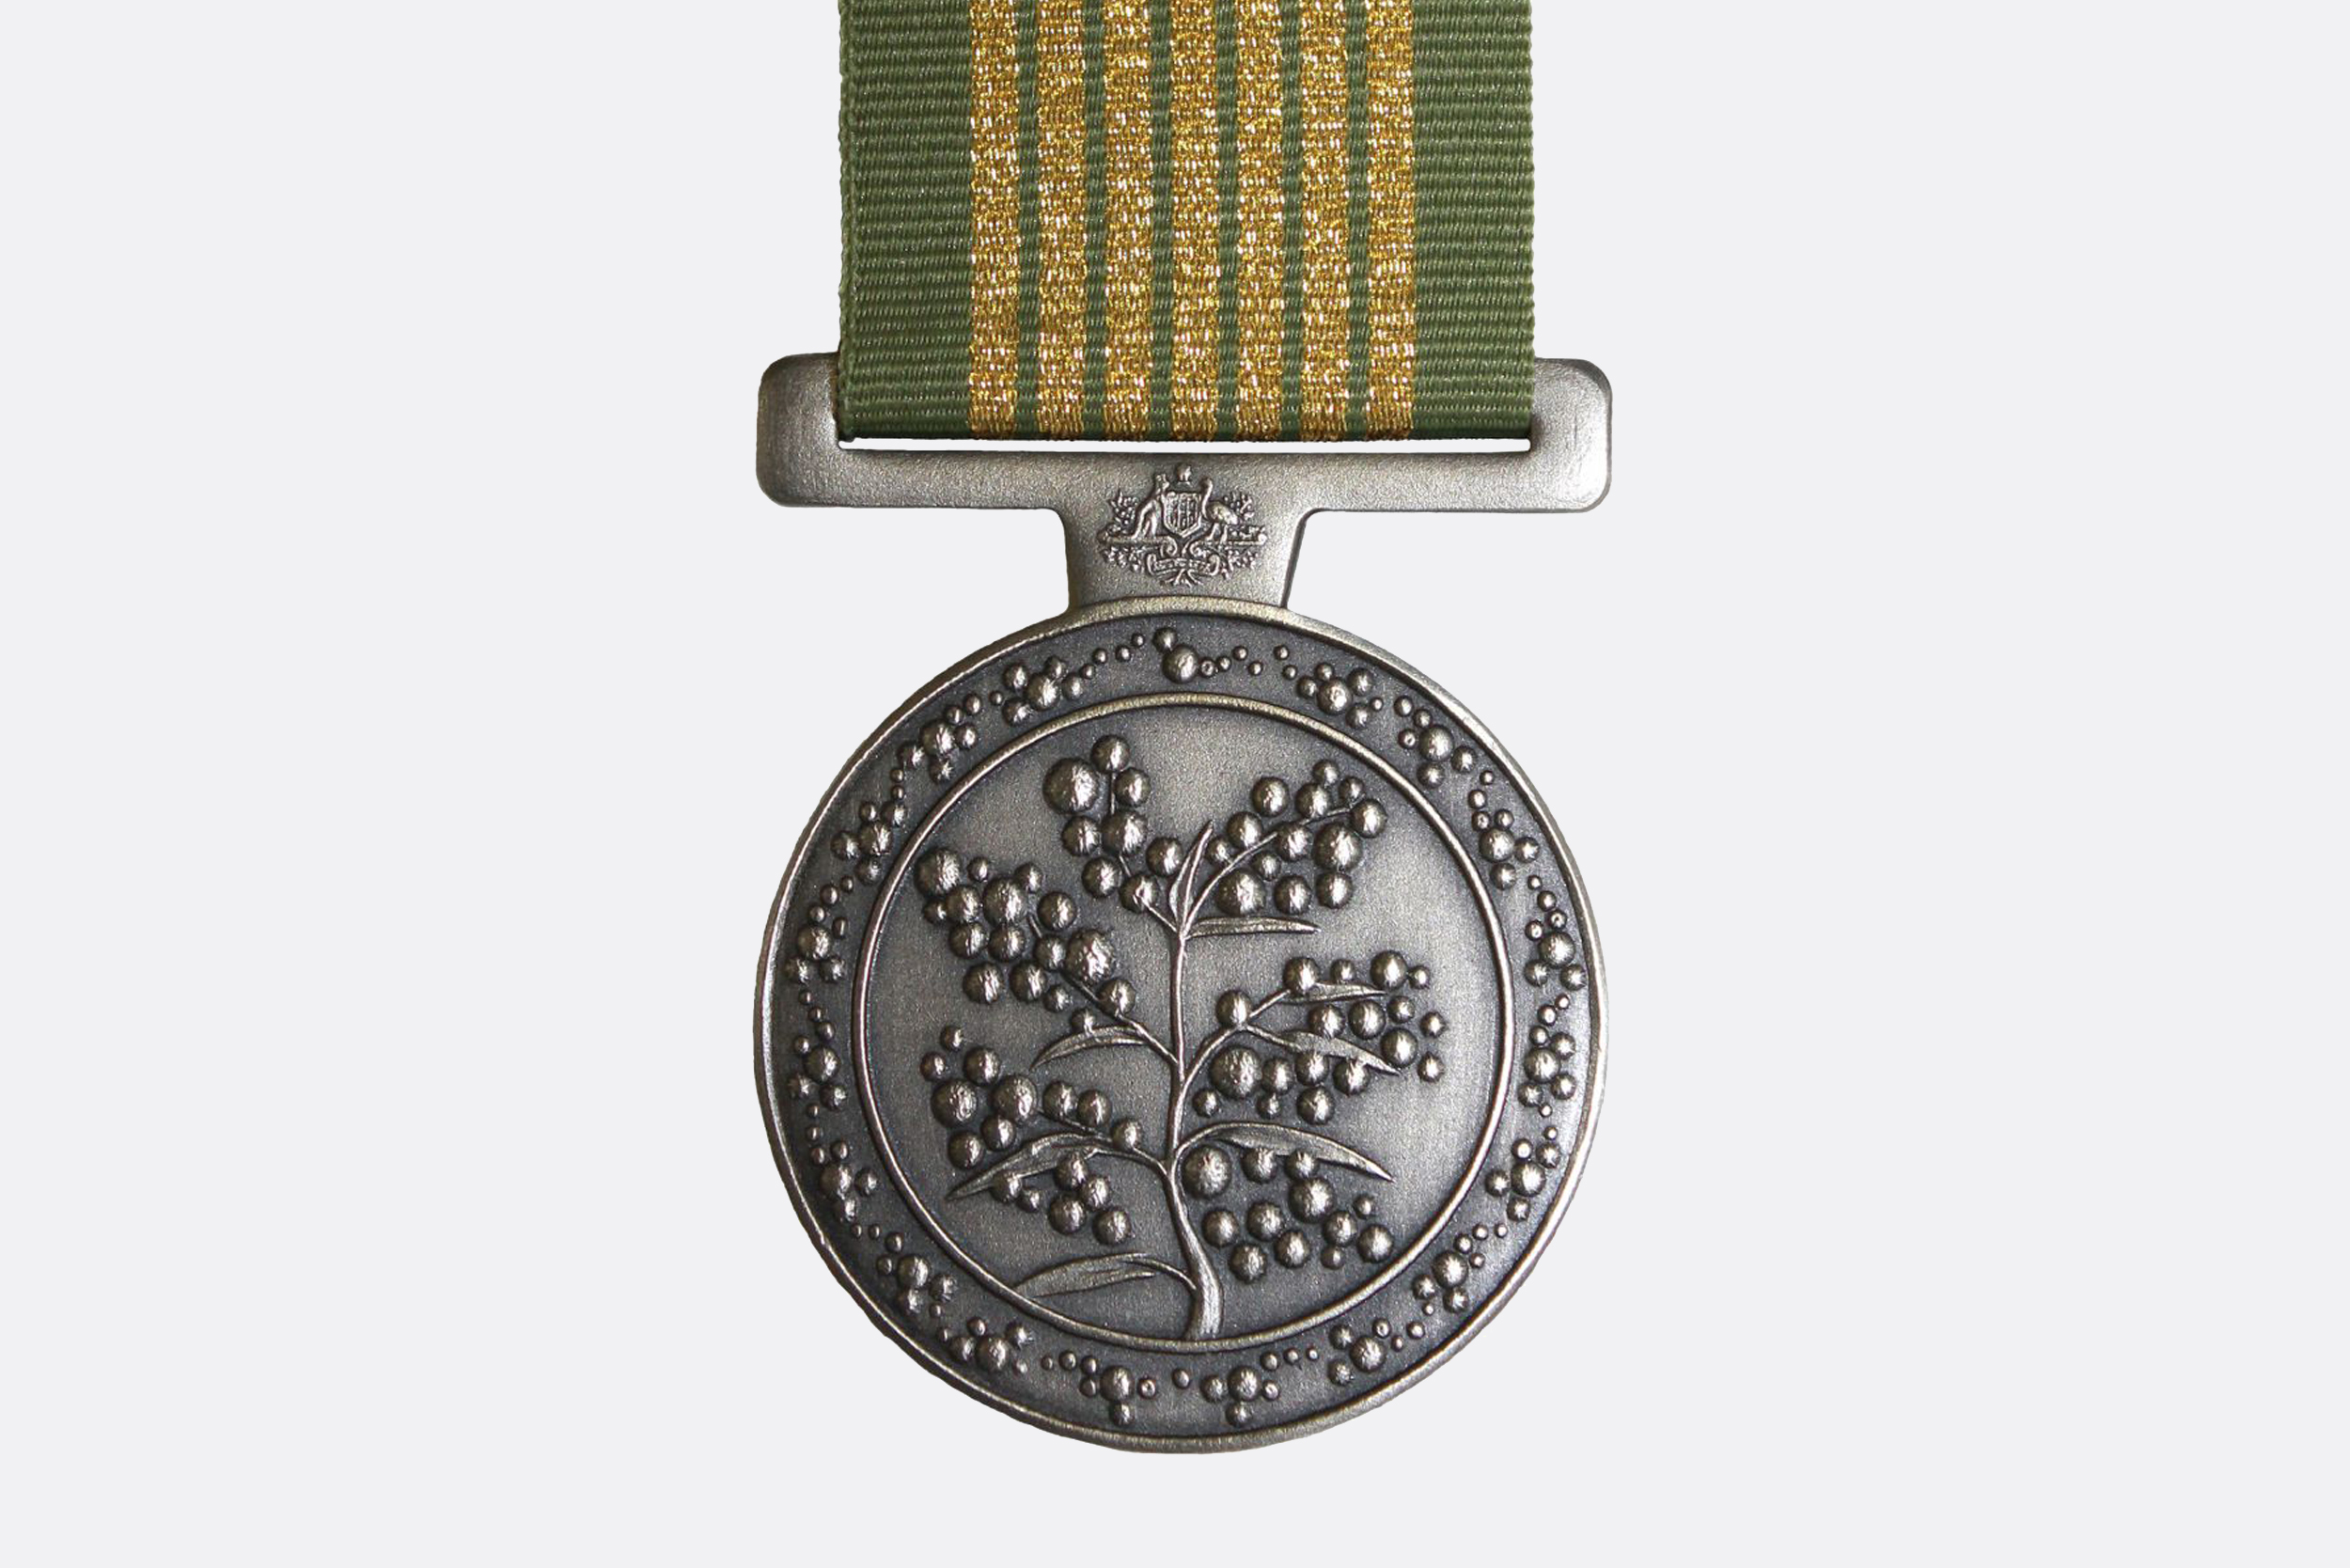 The National Emergency Medal is an award of the Australian honours system given for sustained service during a nationally significant emergency. The central image is a stylised representation of wattle. The image around the central image is a flowering wattle, representing the accomplishments and sacrifices made by Australians in the service of others in times if crisis. Image courtesy of the Office of the Official Secretary to the Governor-General (OOSGG).